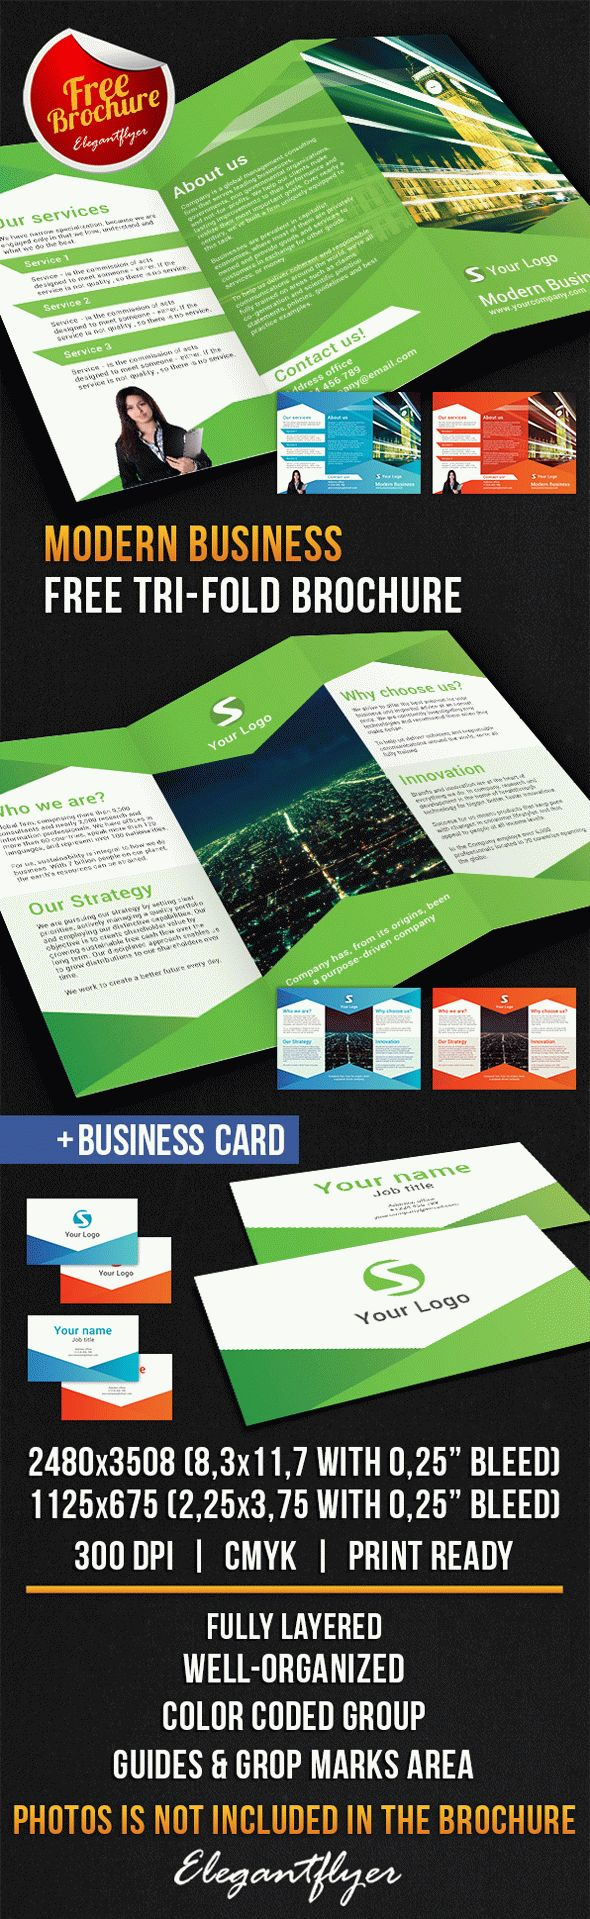 Modern Business Tri-Fold Brochure – Free PSD Template